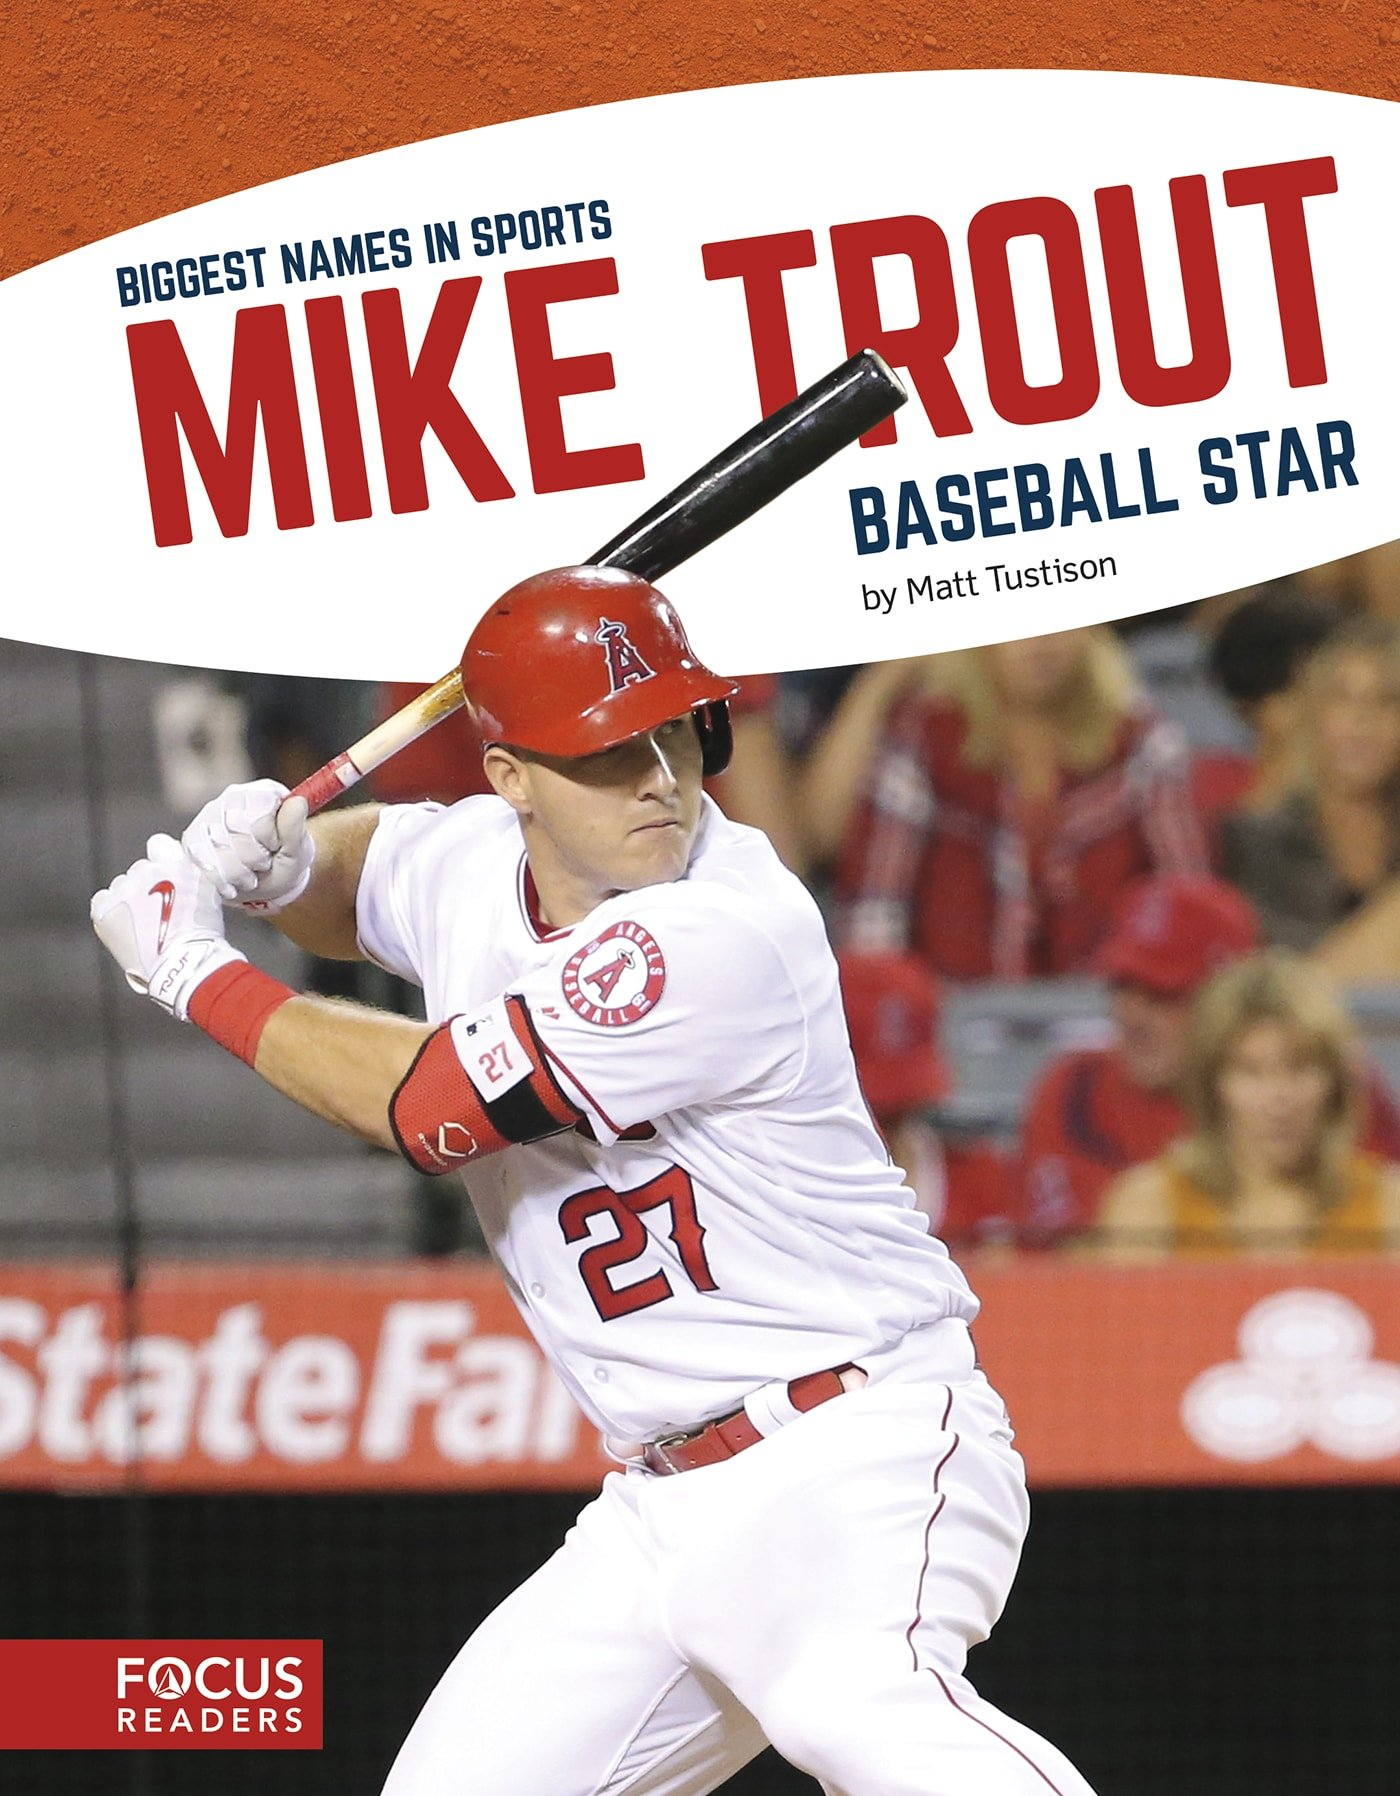 Mike Trout (Biggest Names in Sports)